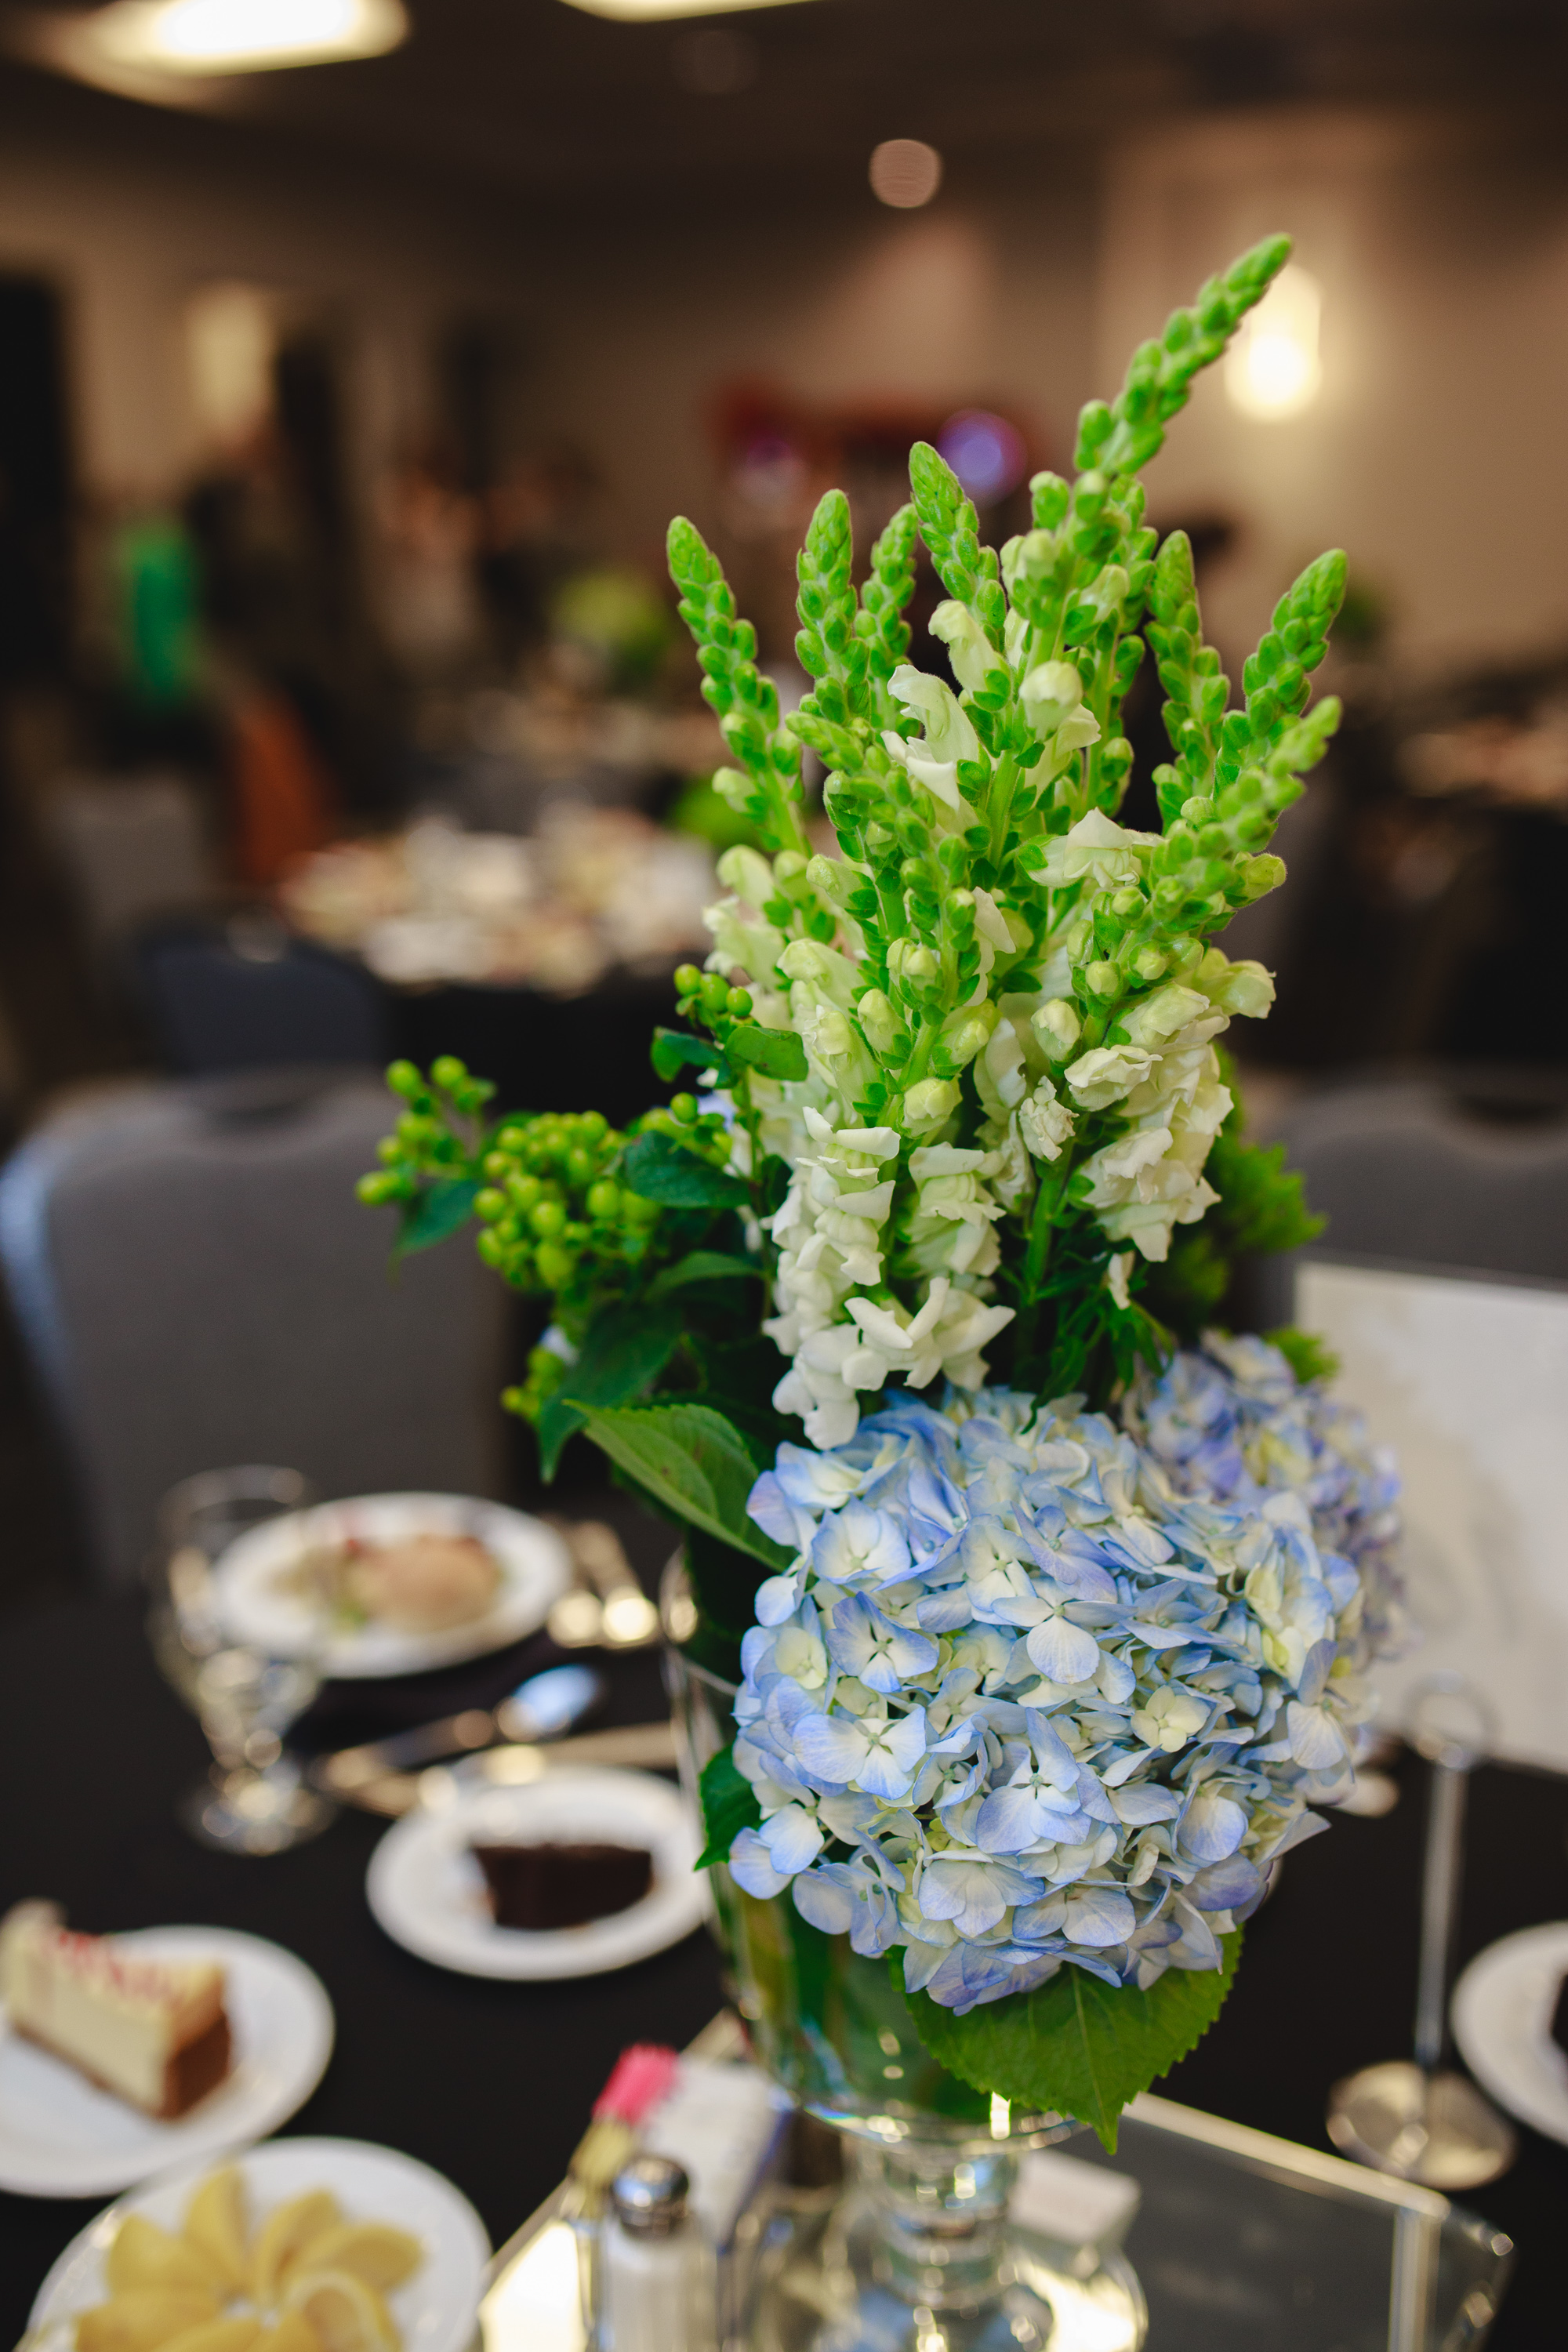 HomeEncouragement-2015-Luncheon-05.jpg